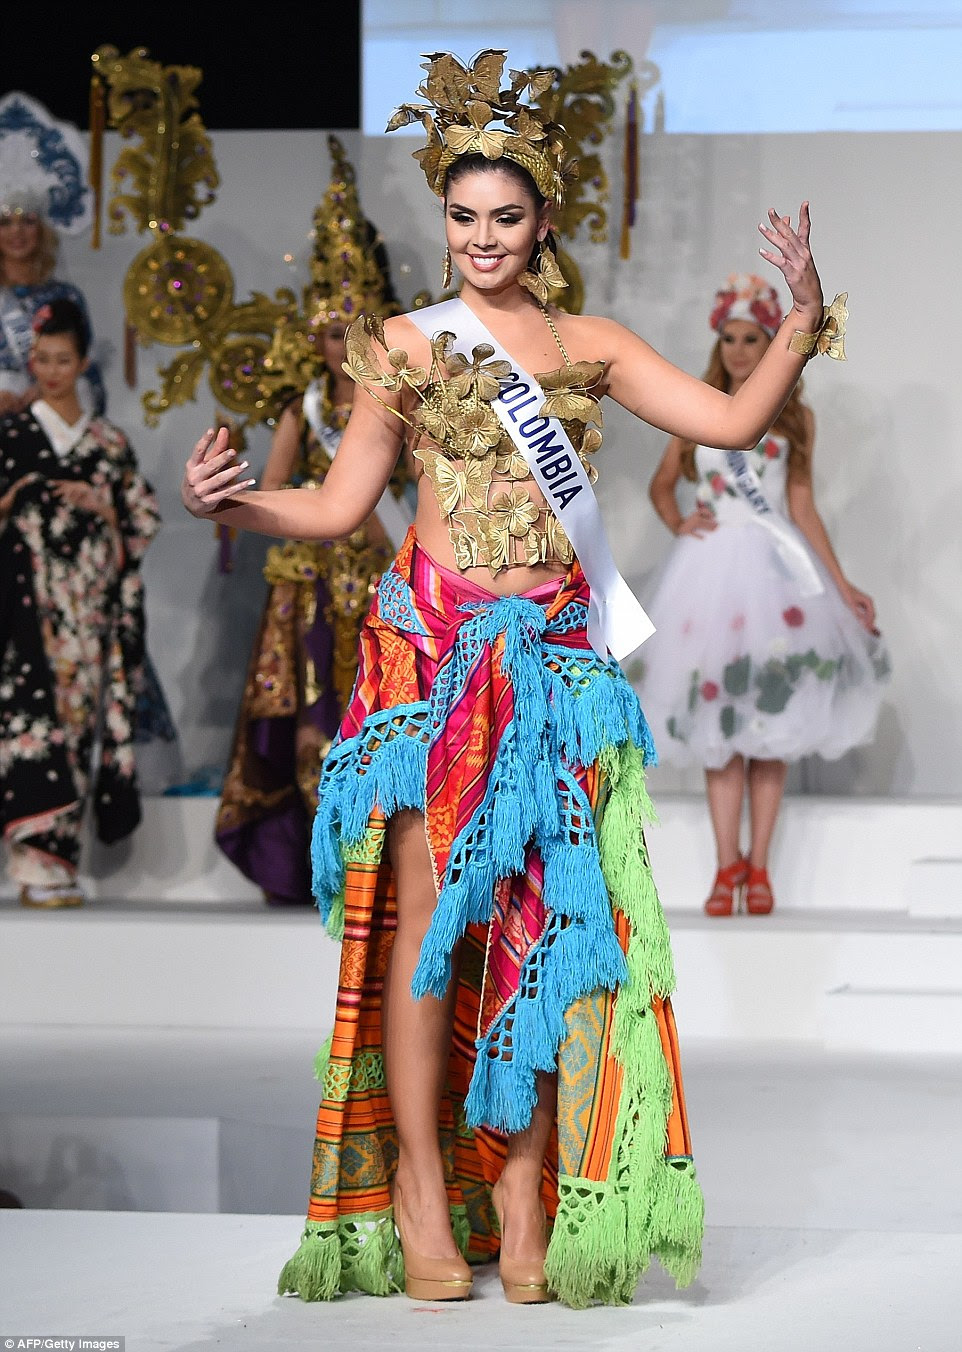 Miss Colombia appeared to take a classically colourful patterned blanket and tie it around her waist to wear as a skirt. We'll wait for that one to catch on - or perhaps she had a wardrobe malfunction with her original skirt? Either way Natalia Ochoa Calle's top and crown had a bit more effort put into them, adorned with sparkly gold butterflies and flowers